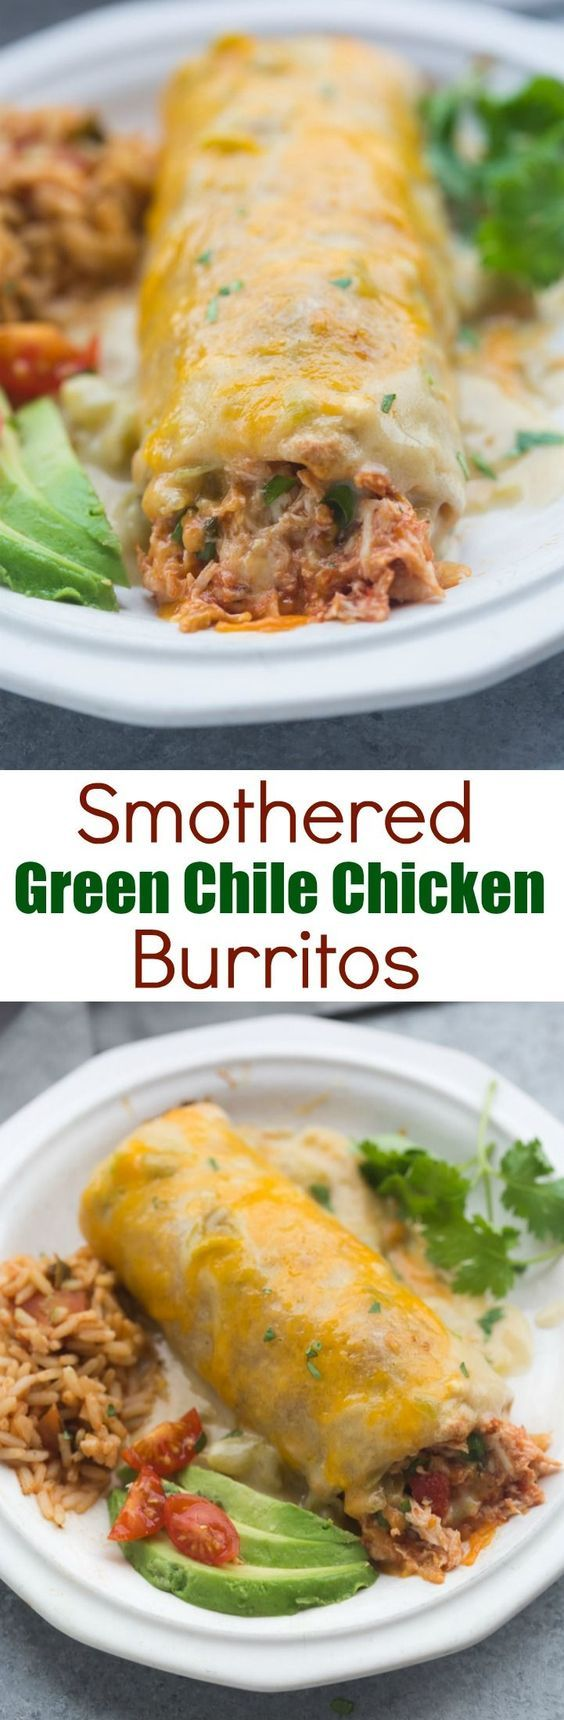 These Smothered Green Chile Chicken Burritos are AMAZING, and super easy to prepare. They're baked until crispy and smothered in the best, homemade green chile sauce.